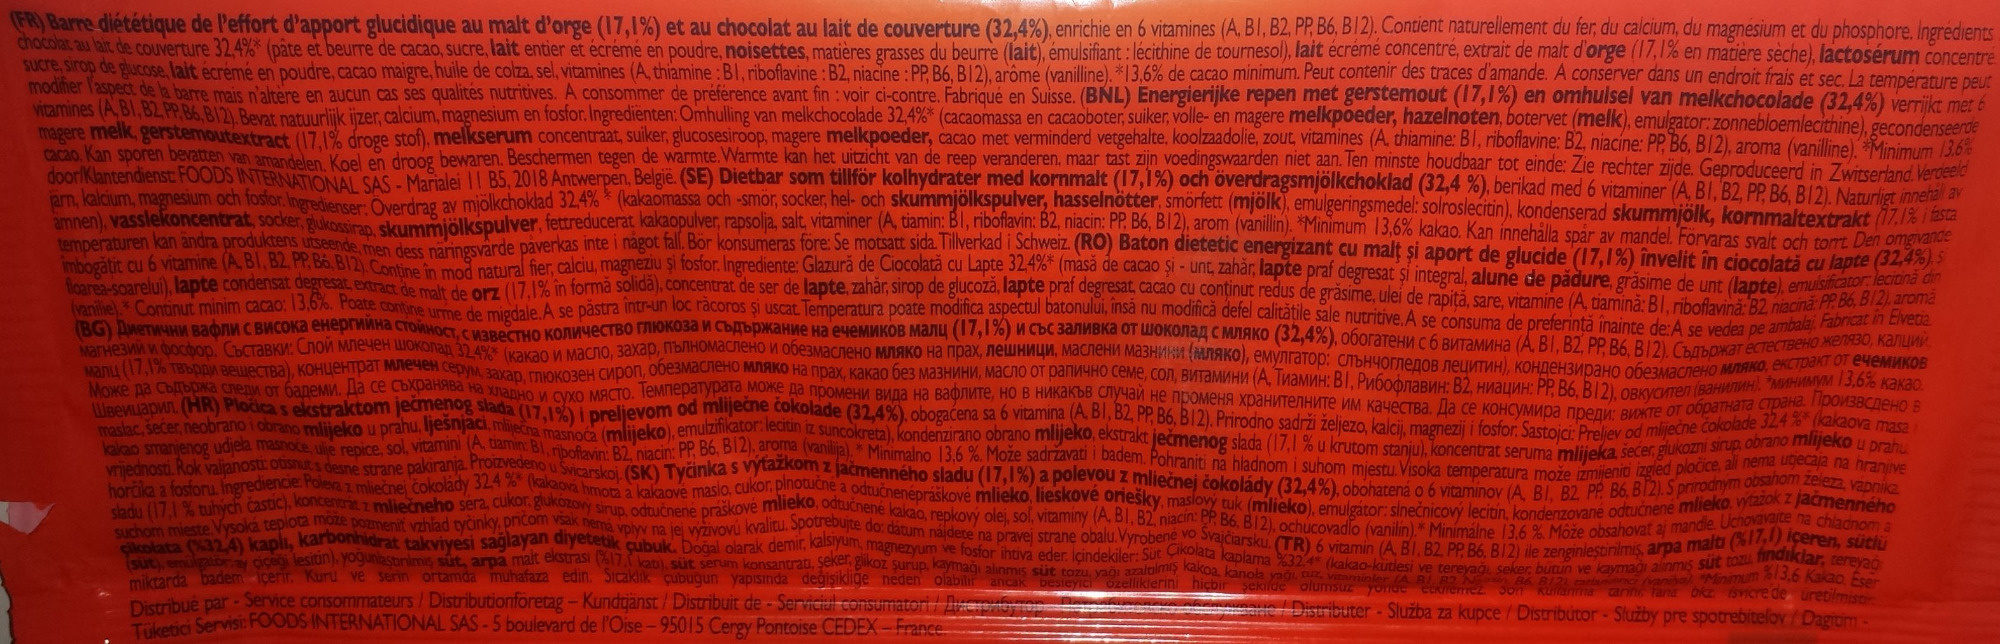 Ovomaltine Barres - Ingredients